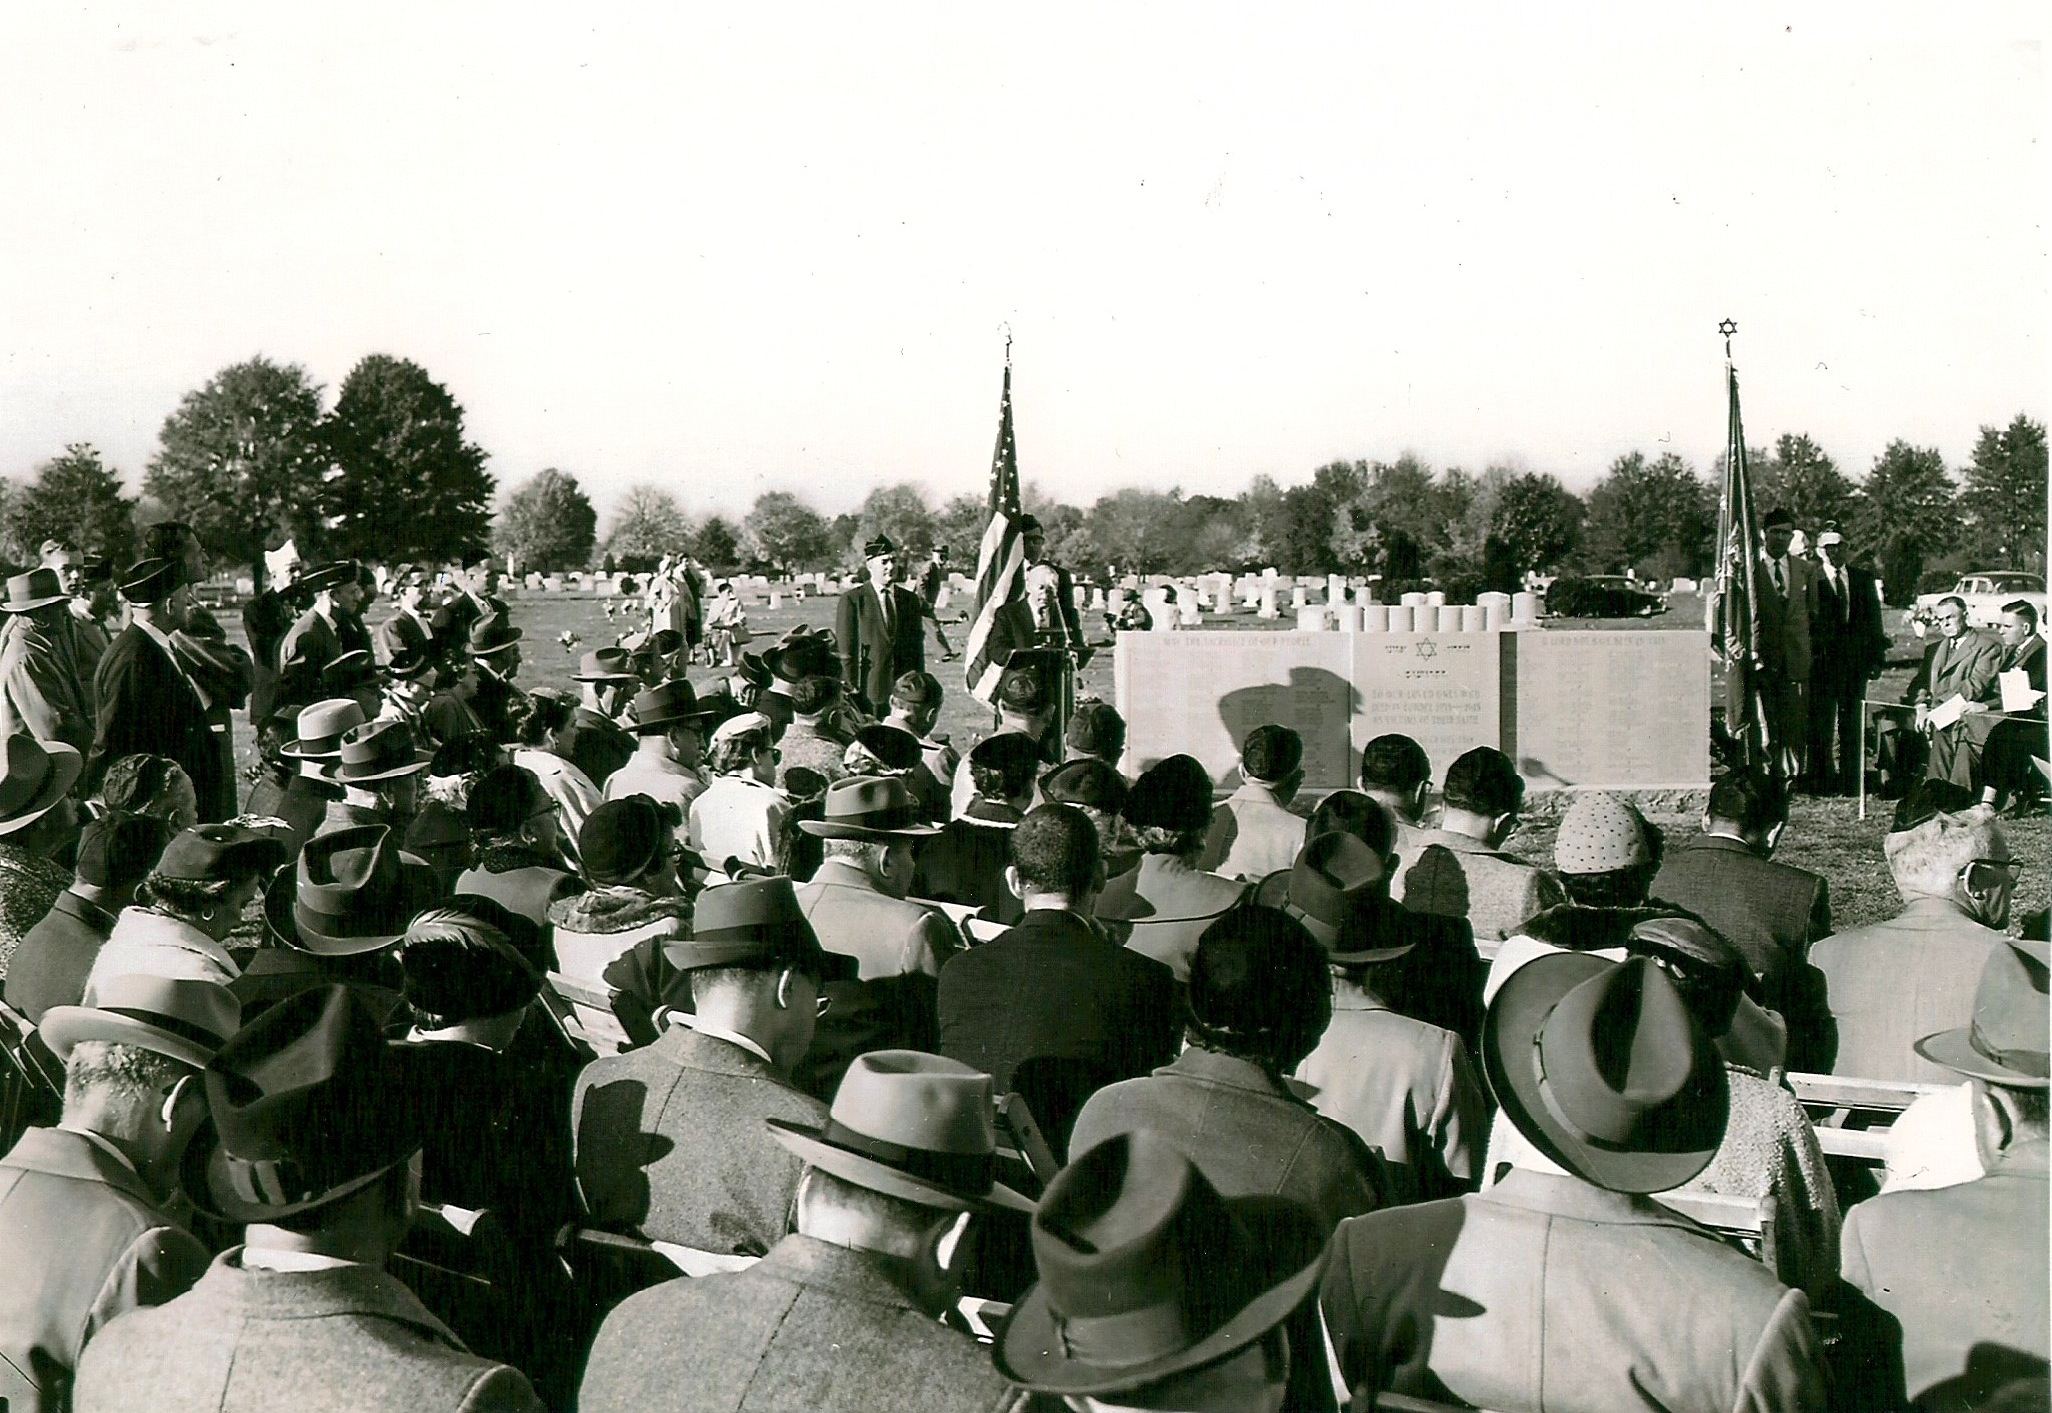 Image of the dedication of the Emek Sholom Memorial in 1955